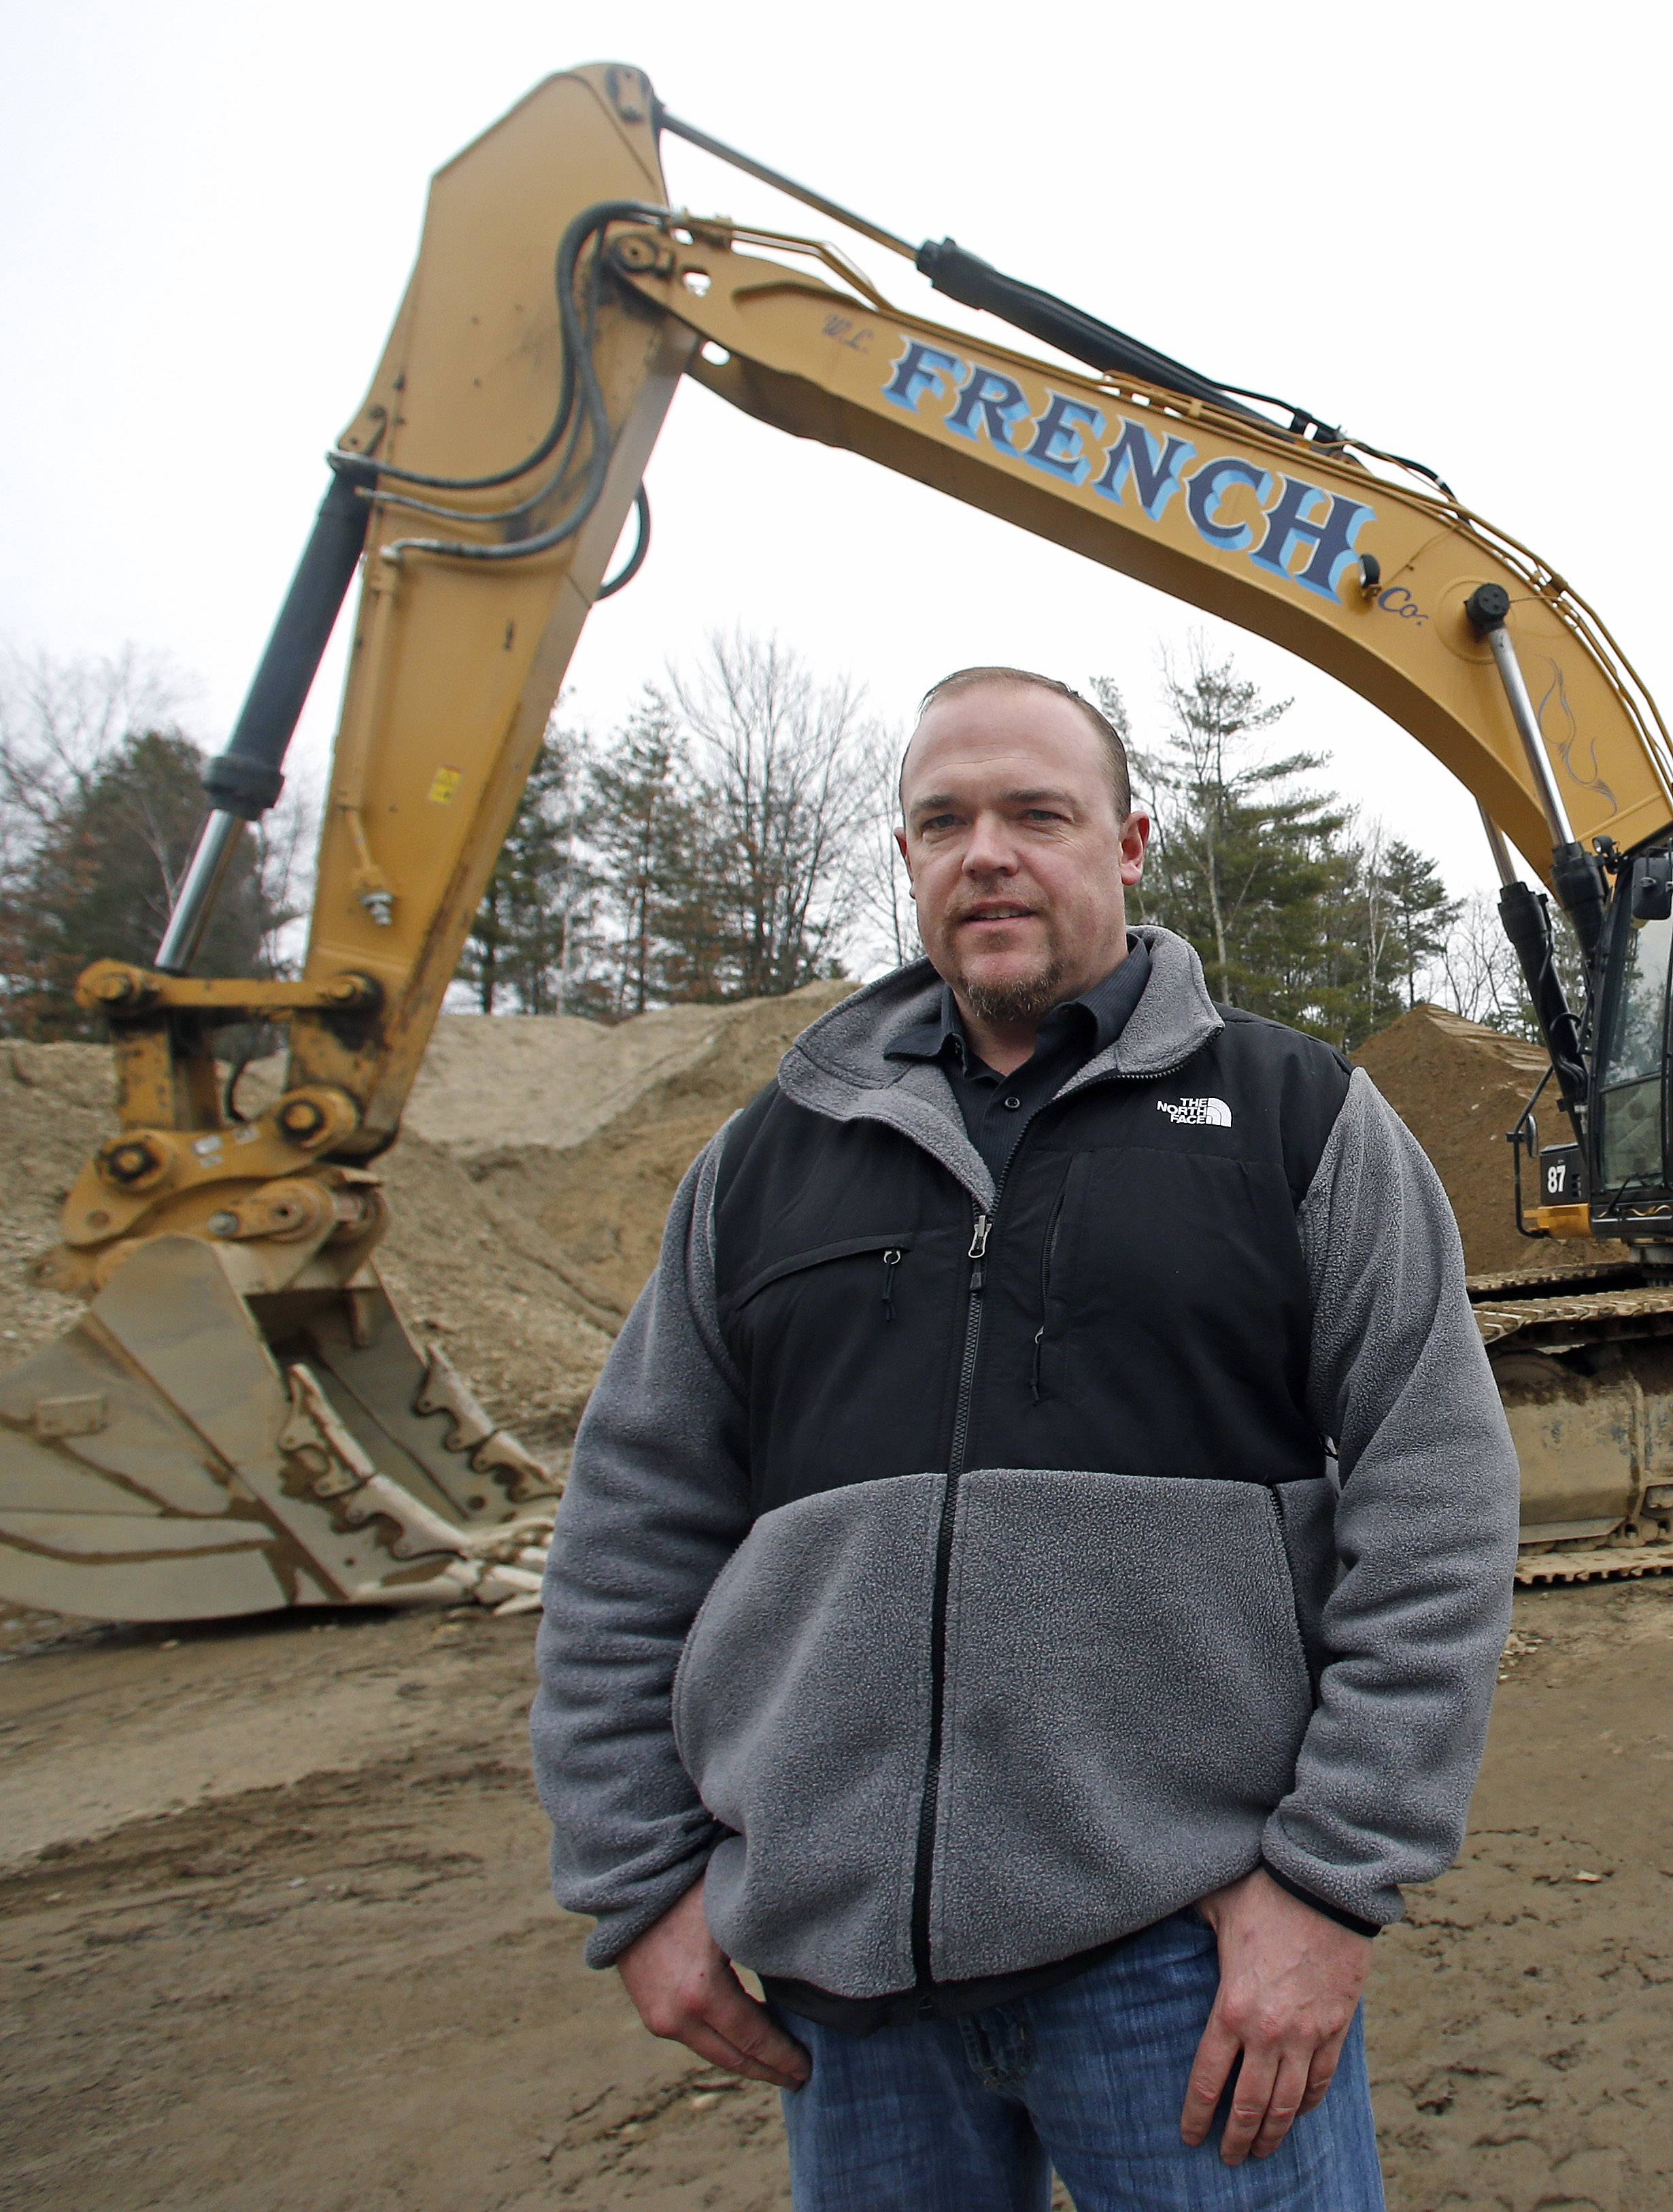 Bill French Jr., owner of W.L. French Excavating Corporation, bought equipment with small business tax breaks before they expired at the end of last year. He spent $2 million on equipment, and estimates the deductions saved him $1.1 million. French has put more purchases on hold, hoping the Senate Finance Committee will vote to revive the tax breaks.